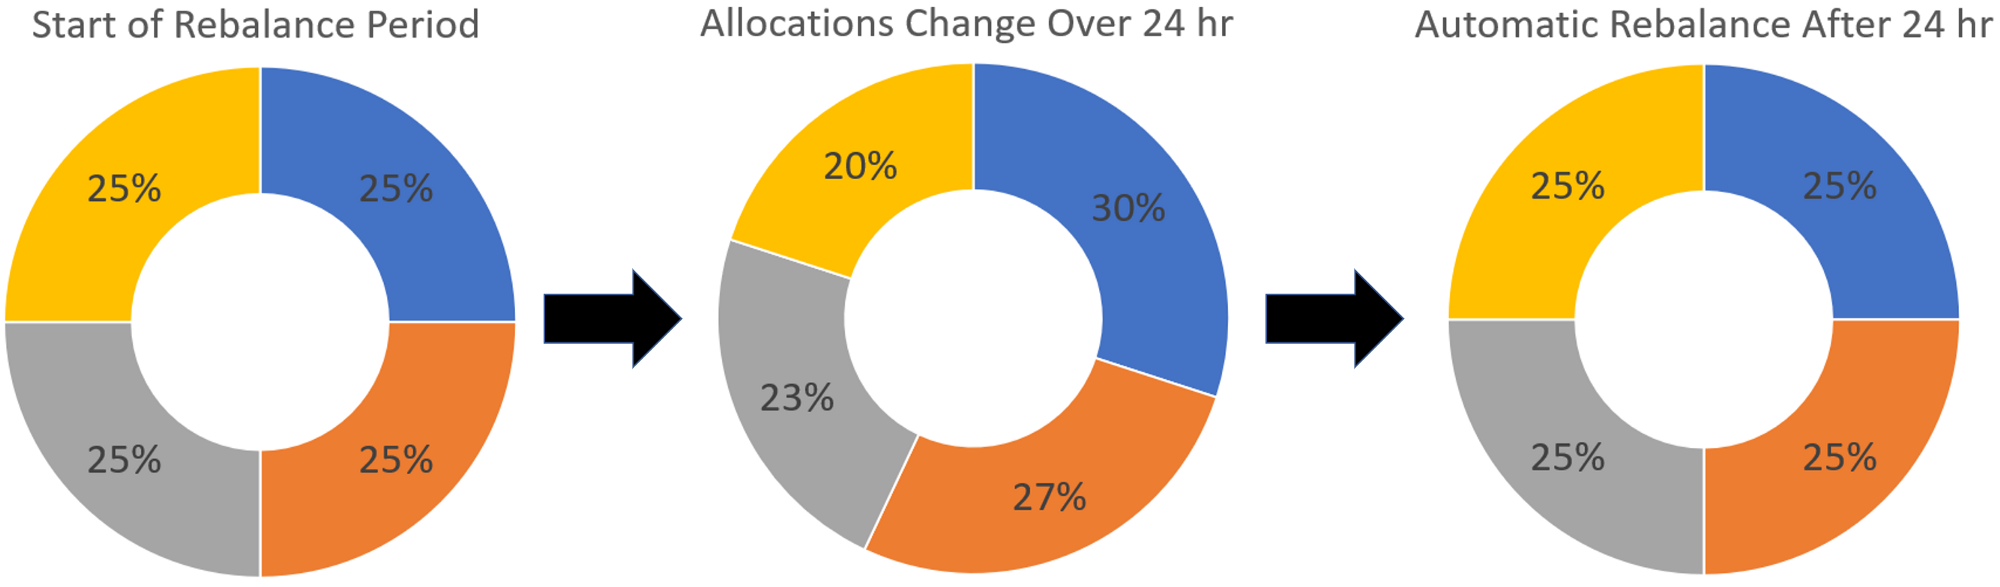 - Simple illustration depicting how periodic rebalancing takes place at specific times. After 24 hours, the allocations are not equal, so a rebalance will make them equal once again.